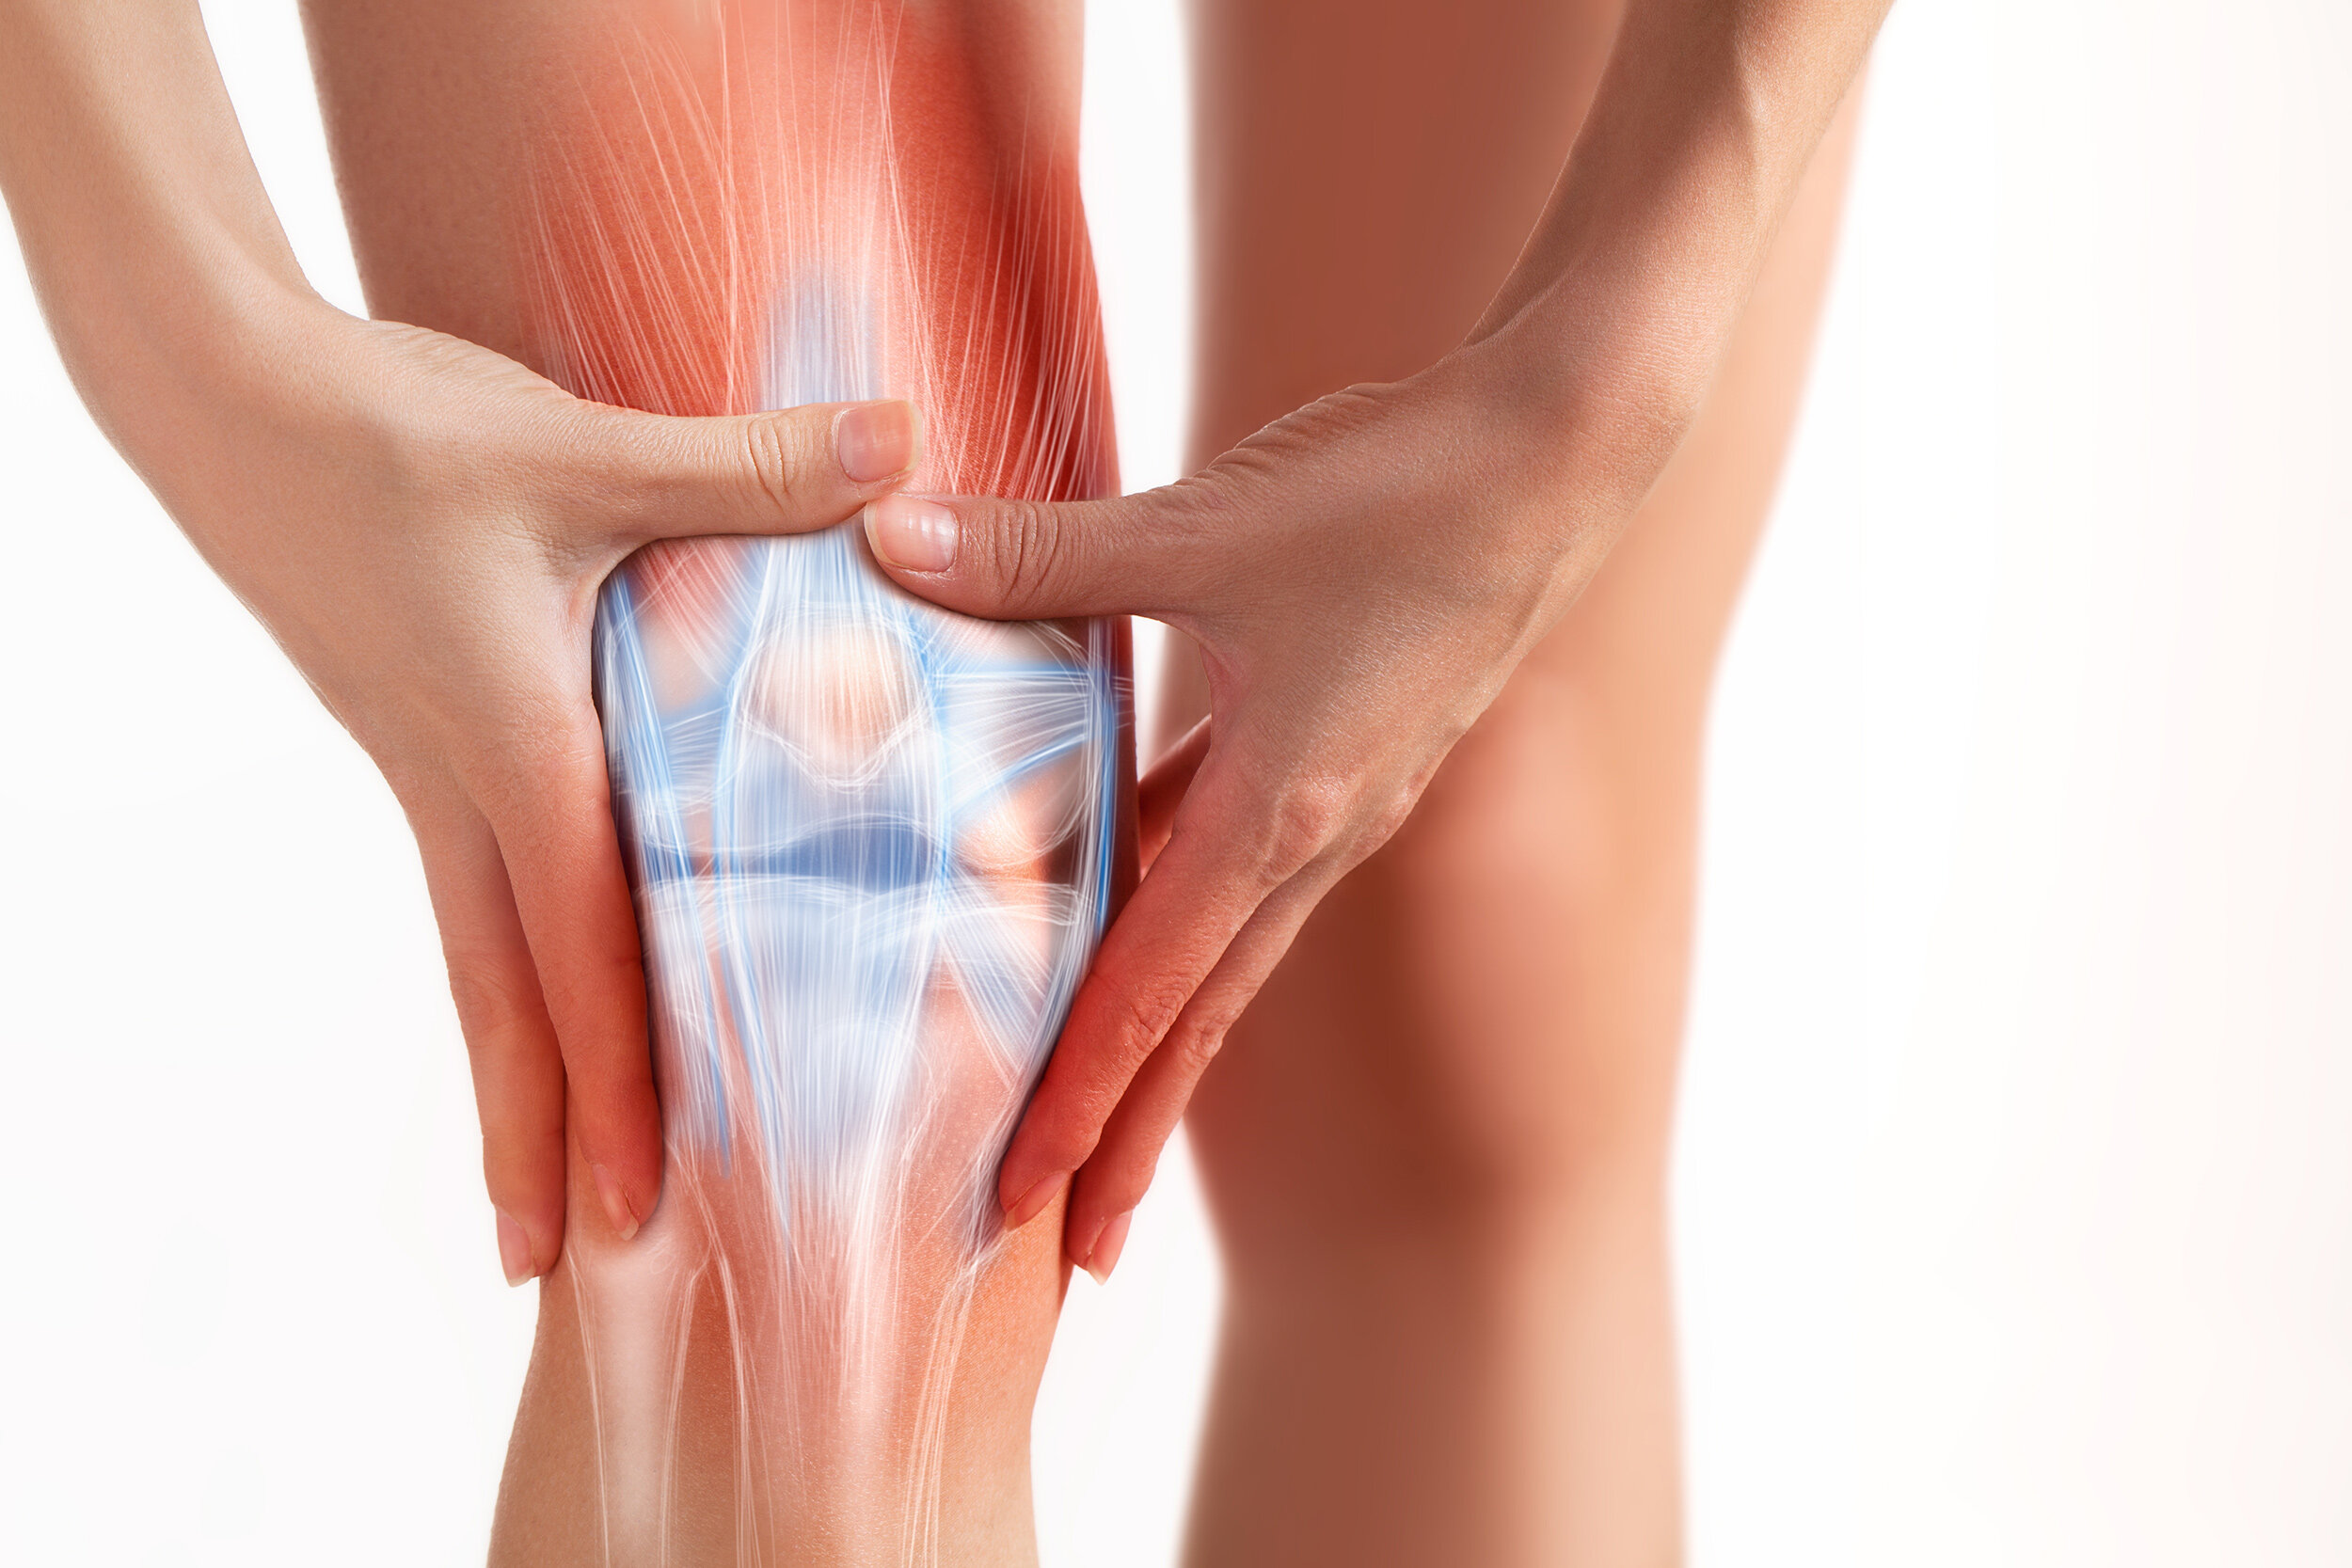 Knee painfree in 5 minutes! - Knee painfree in 5 minutes!